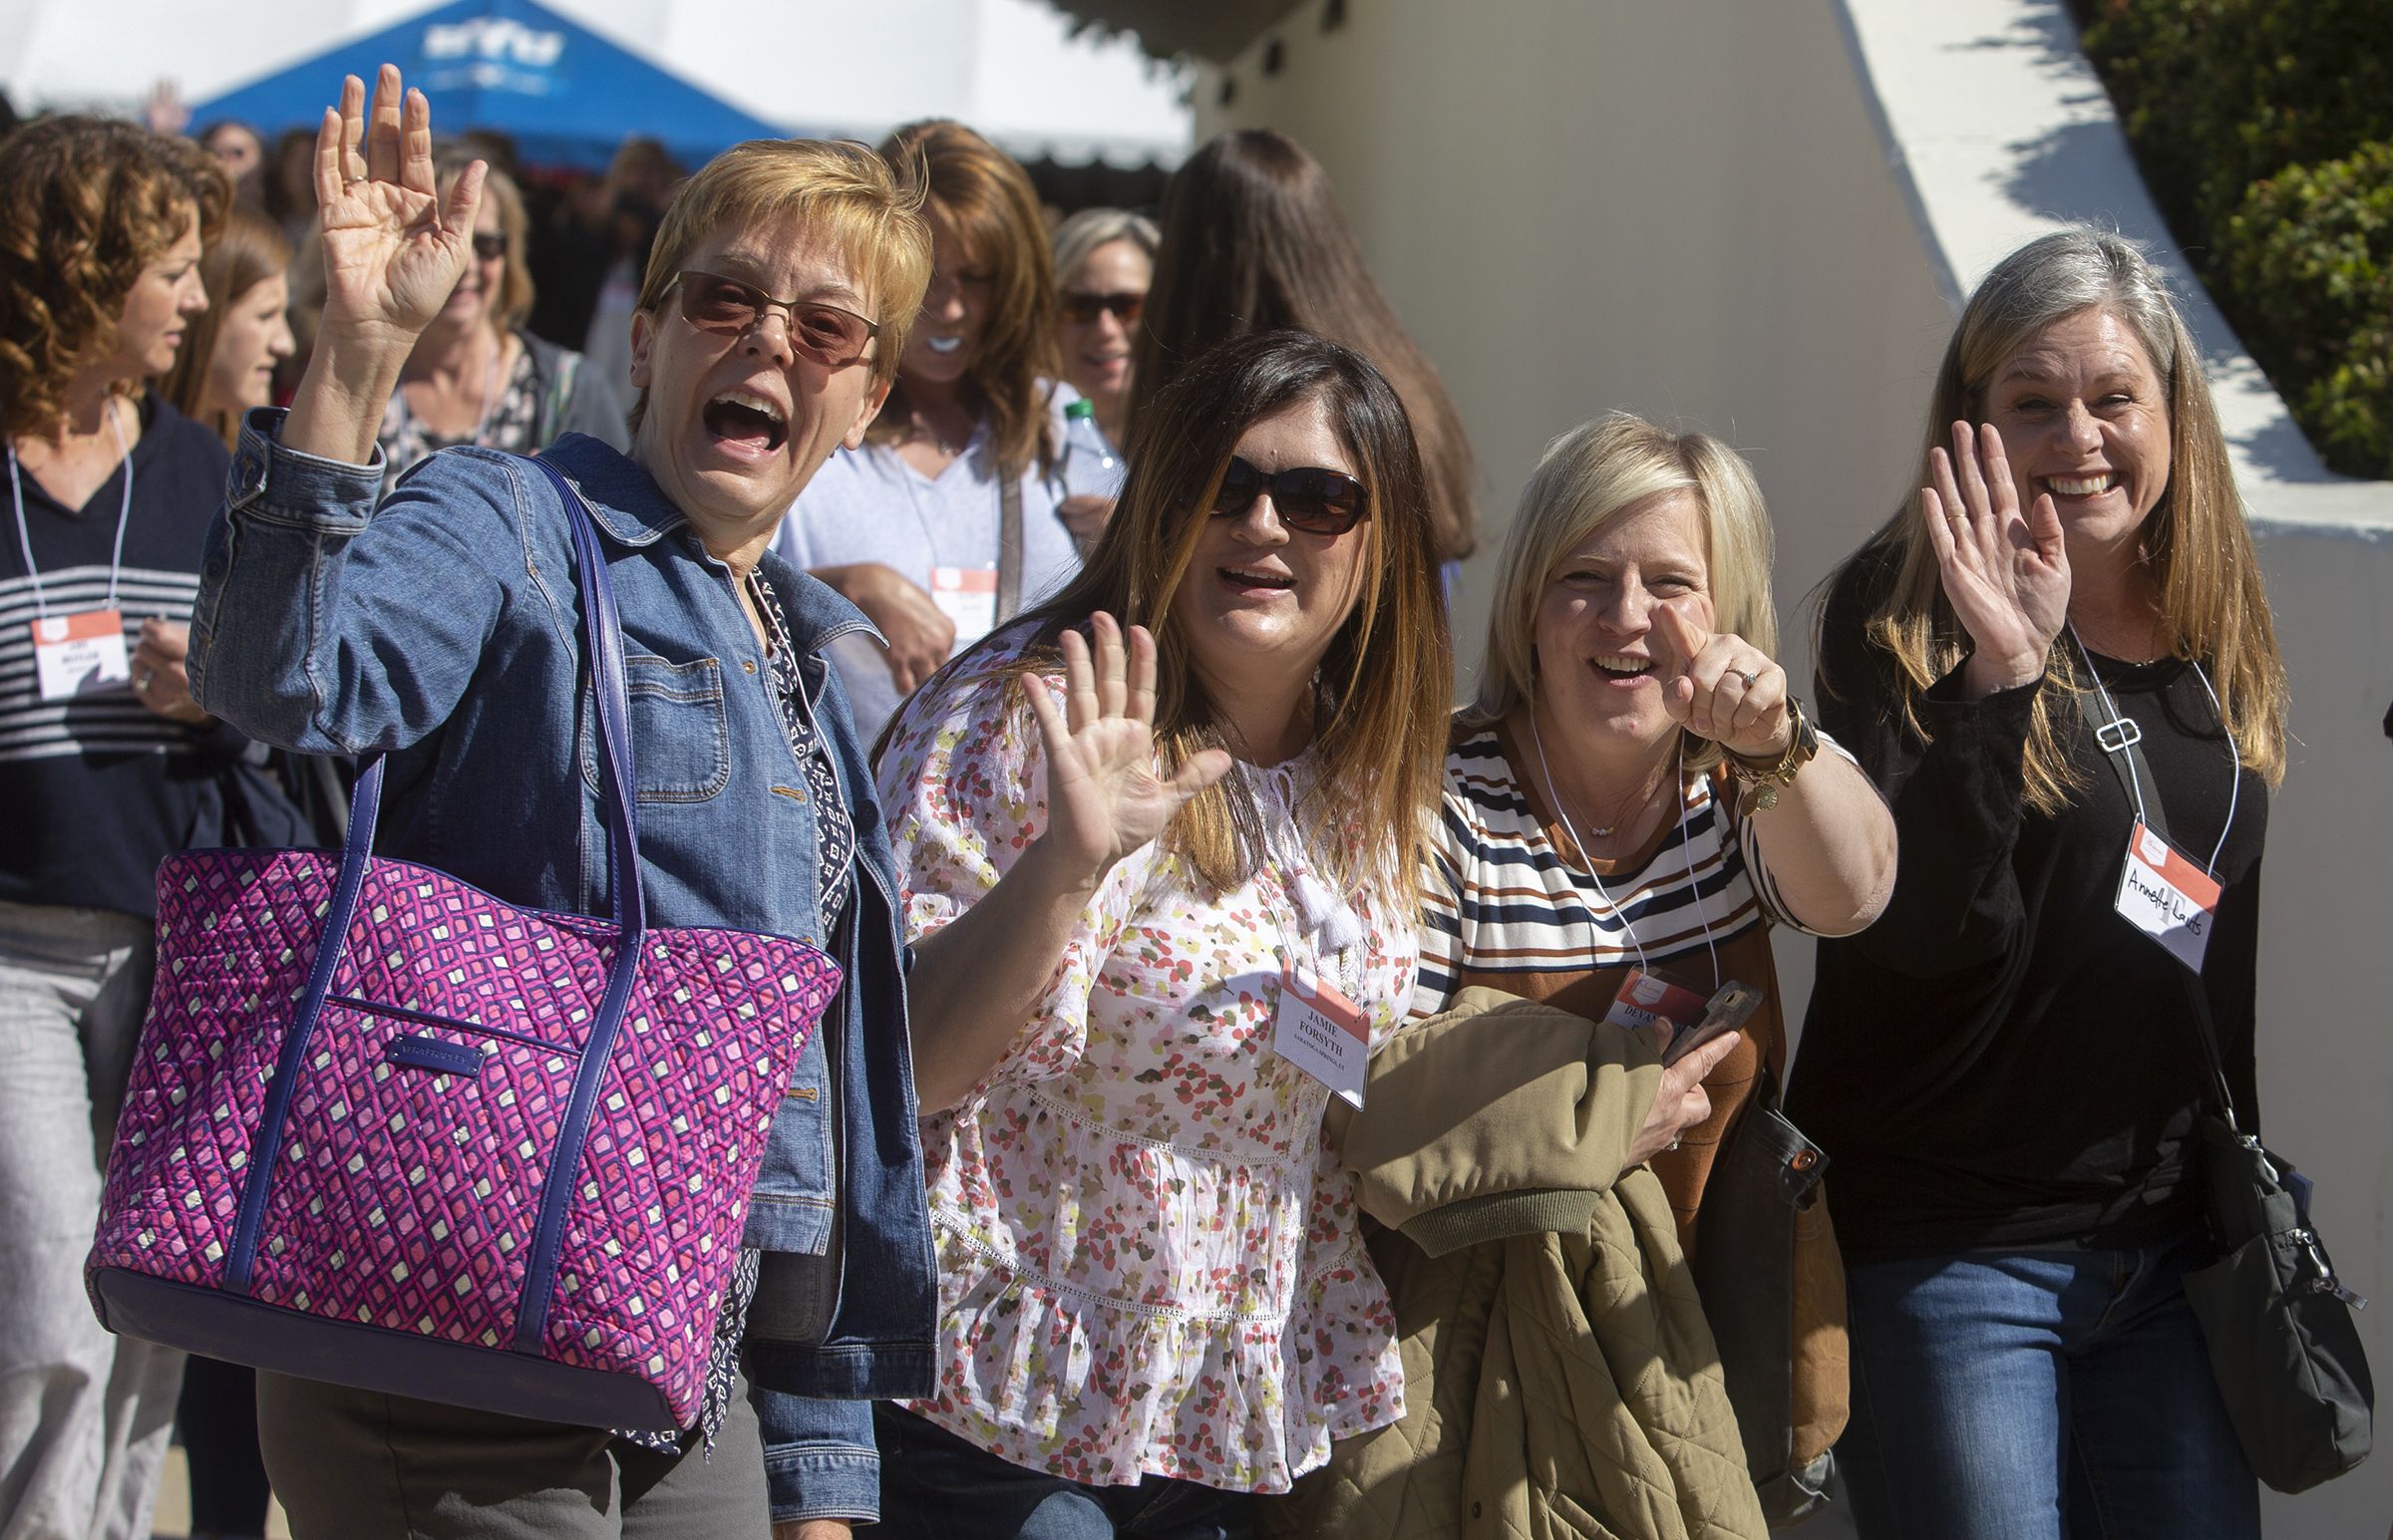 Women wave as they move to other classes as they attend BYU Women's Conference at BYU in Provo, Utah, on Friday, May 3, 2019.